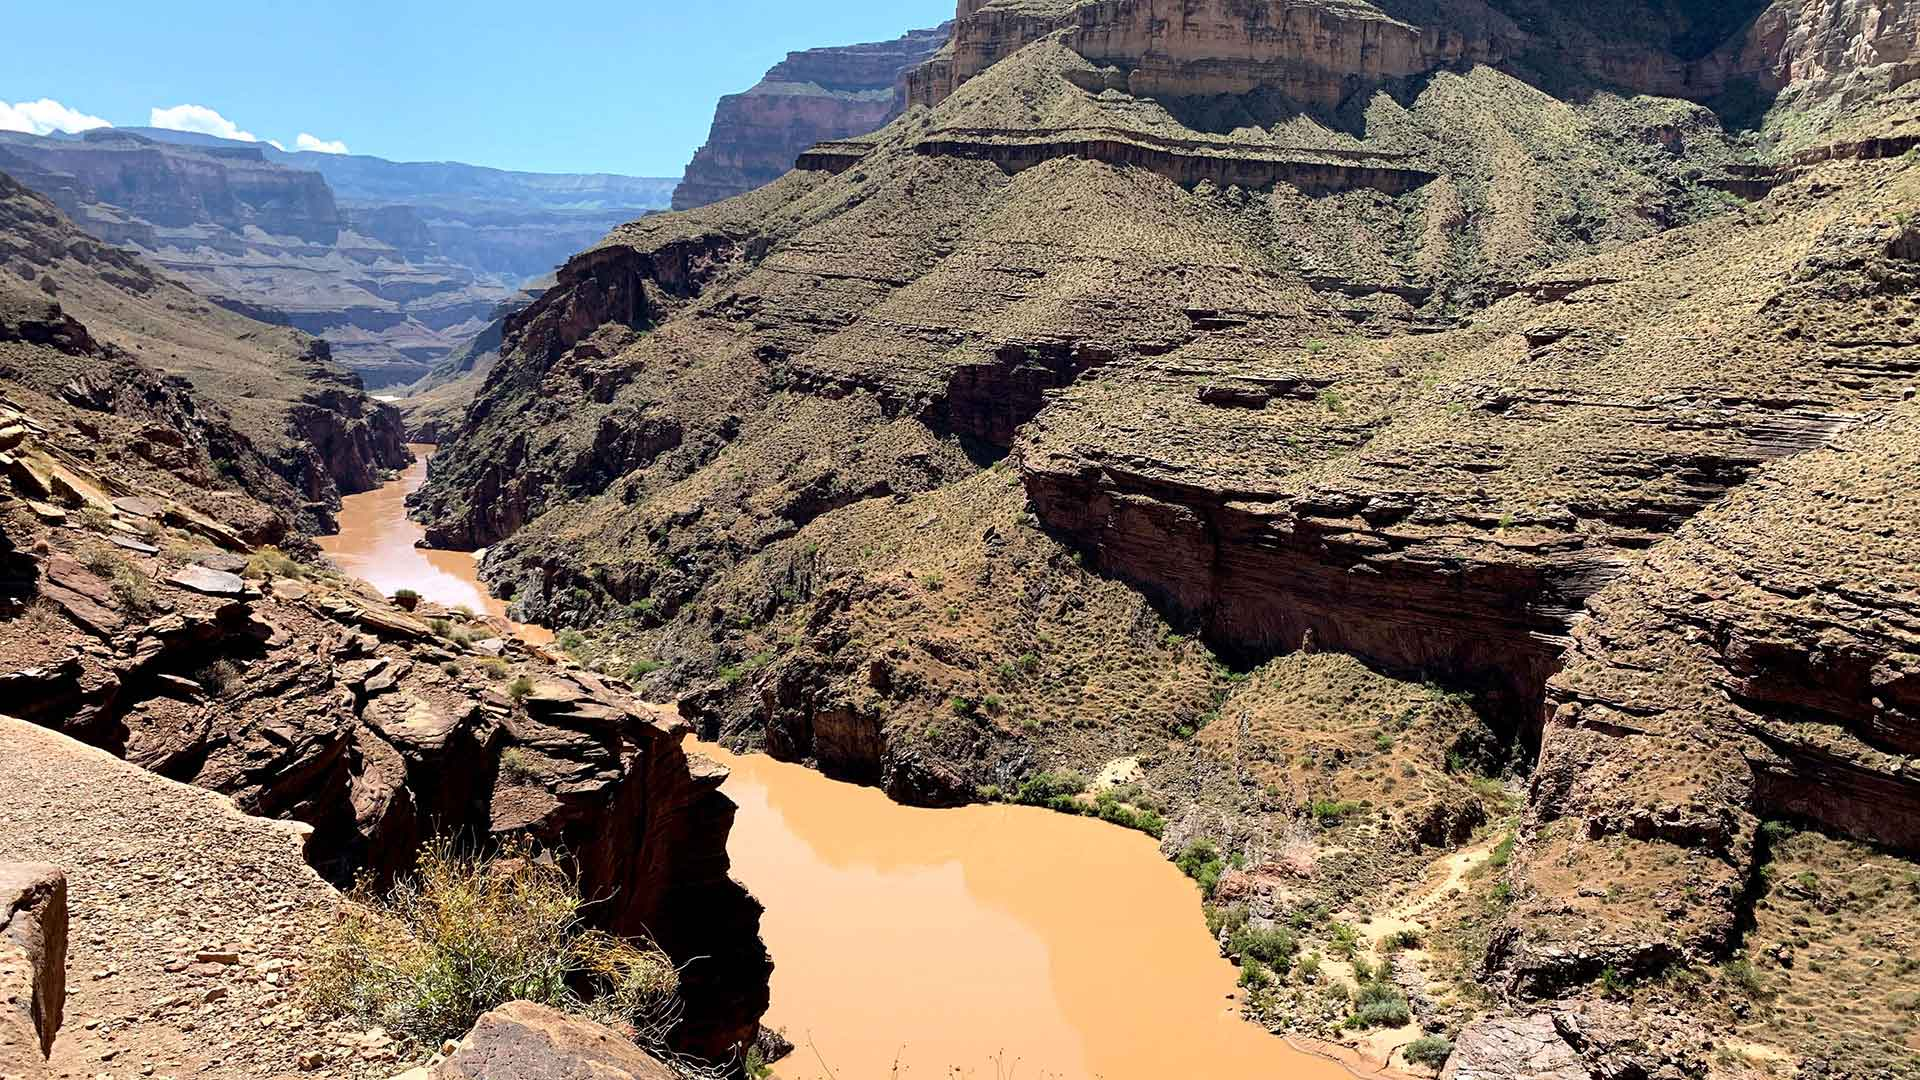 Scientists have been studying the Colorado River, shown here from above Deer Creek Falls, for nearly four decades to understand the environmental impacts of the Glen Canyon Dam on a water source used by around 40 million people in seven states. The environment, climate change, tribal rights and those water users will all be considered in river-management talks expected to begin later this year.